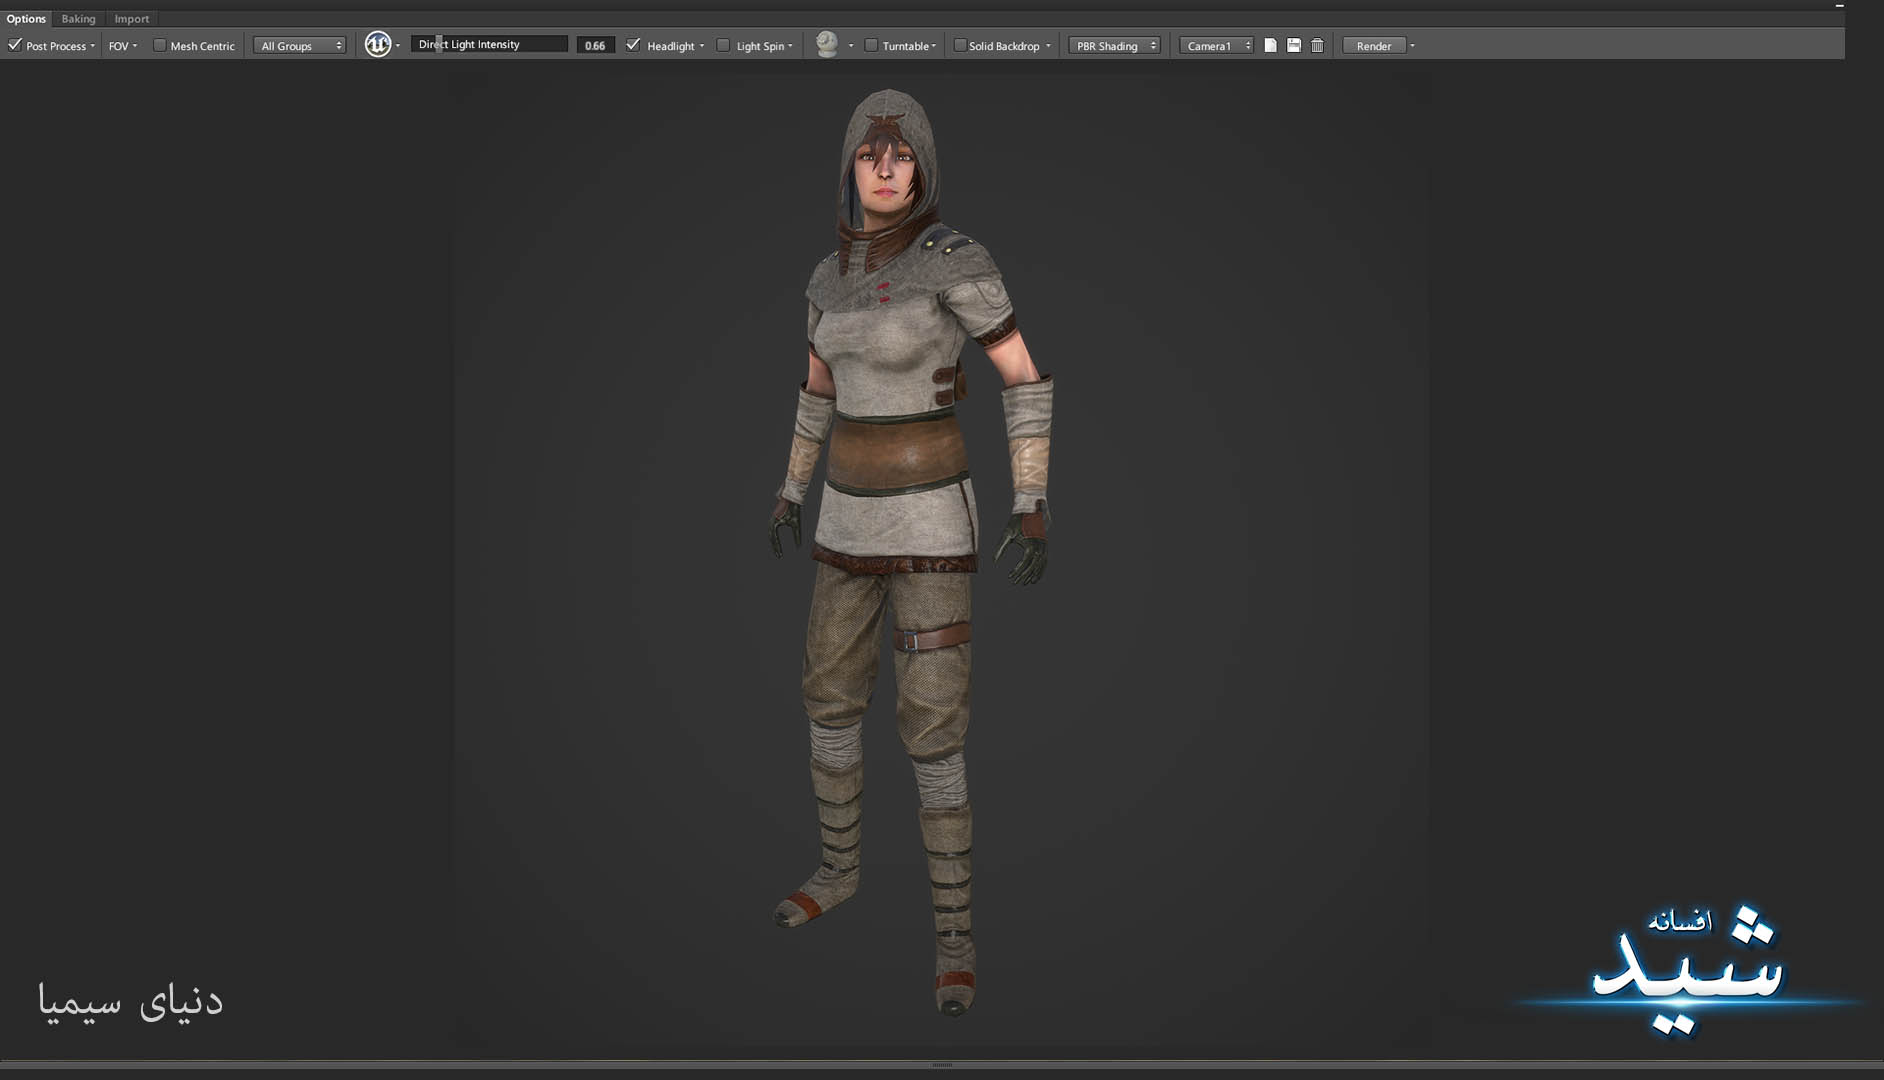 Legend of the light_Archer Character Texturing_Hadi Beheshti CG Artist Game Designer-3